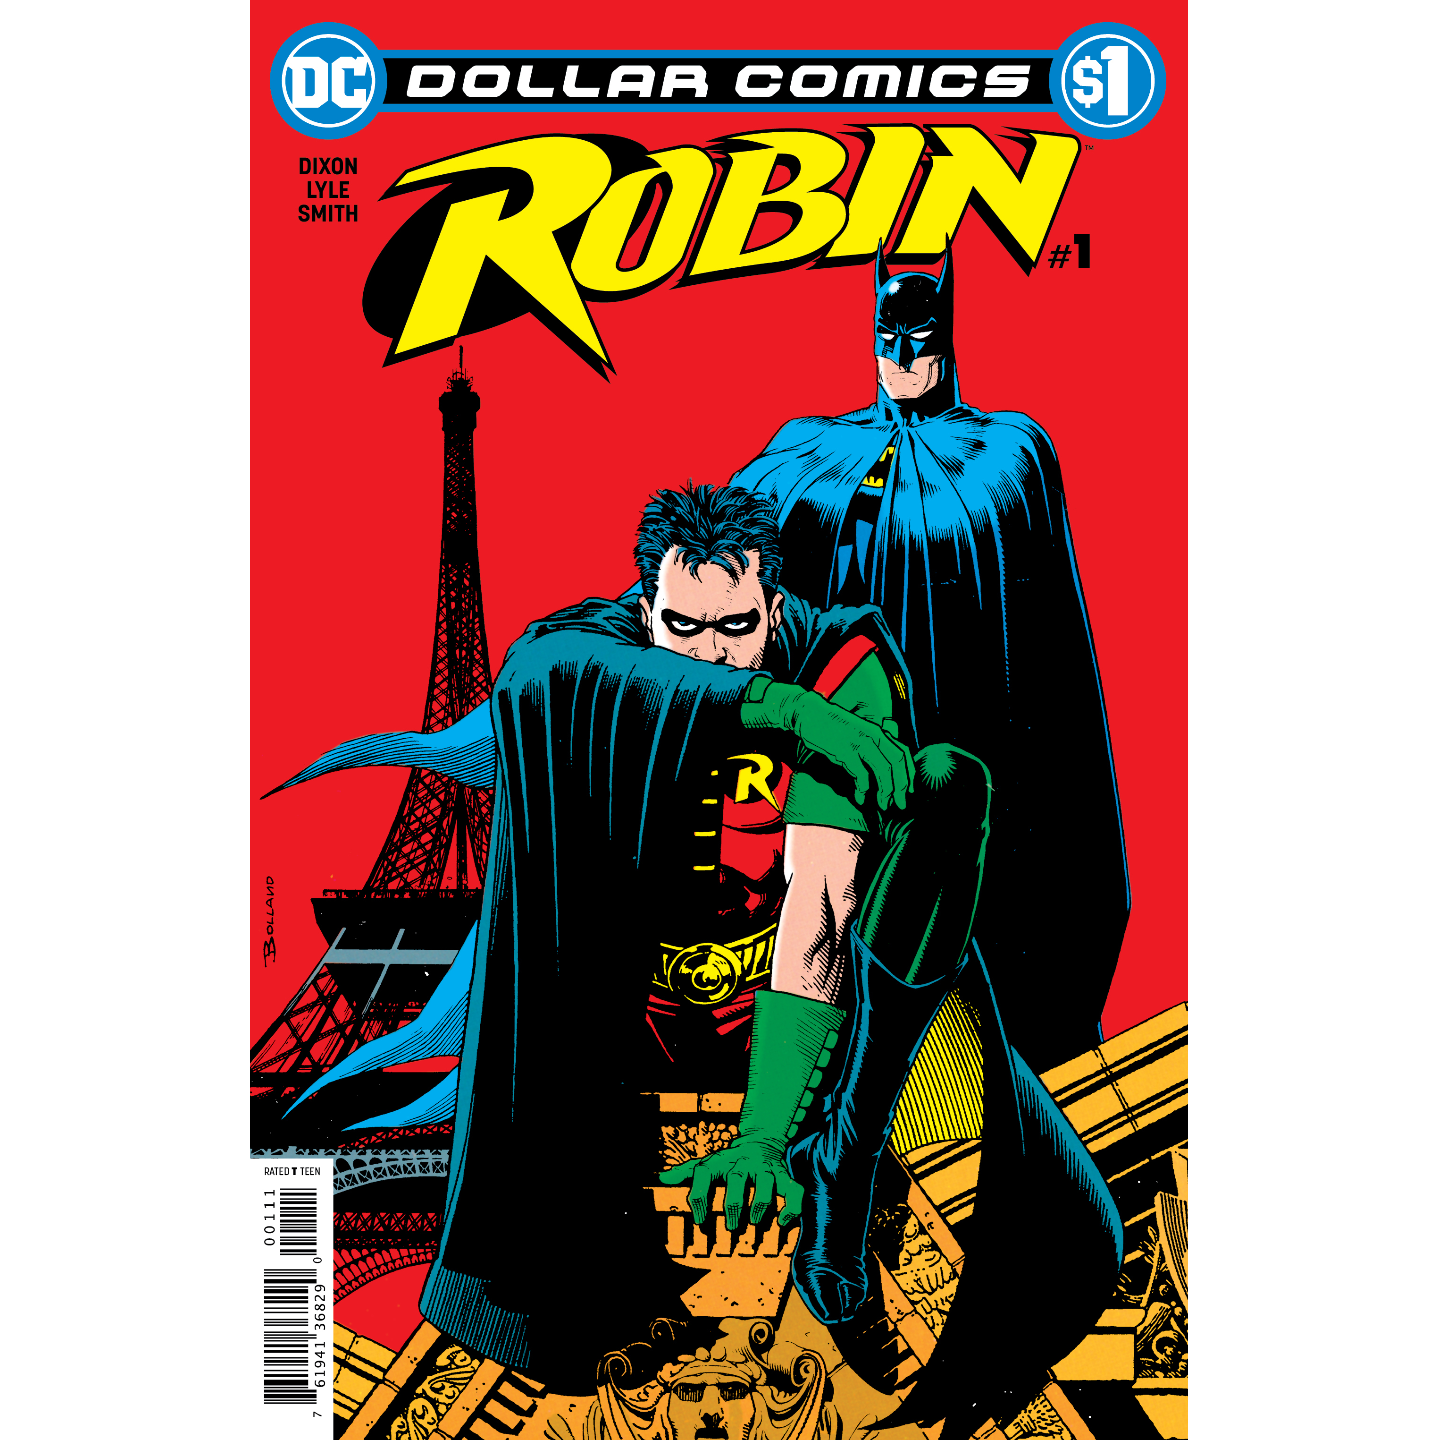 DOLLAR COMICS ROBIN 1 1991